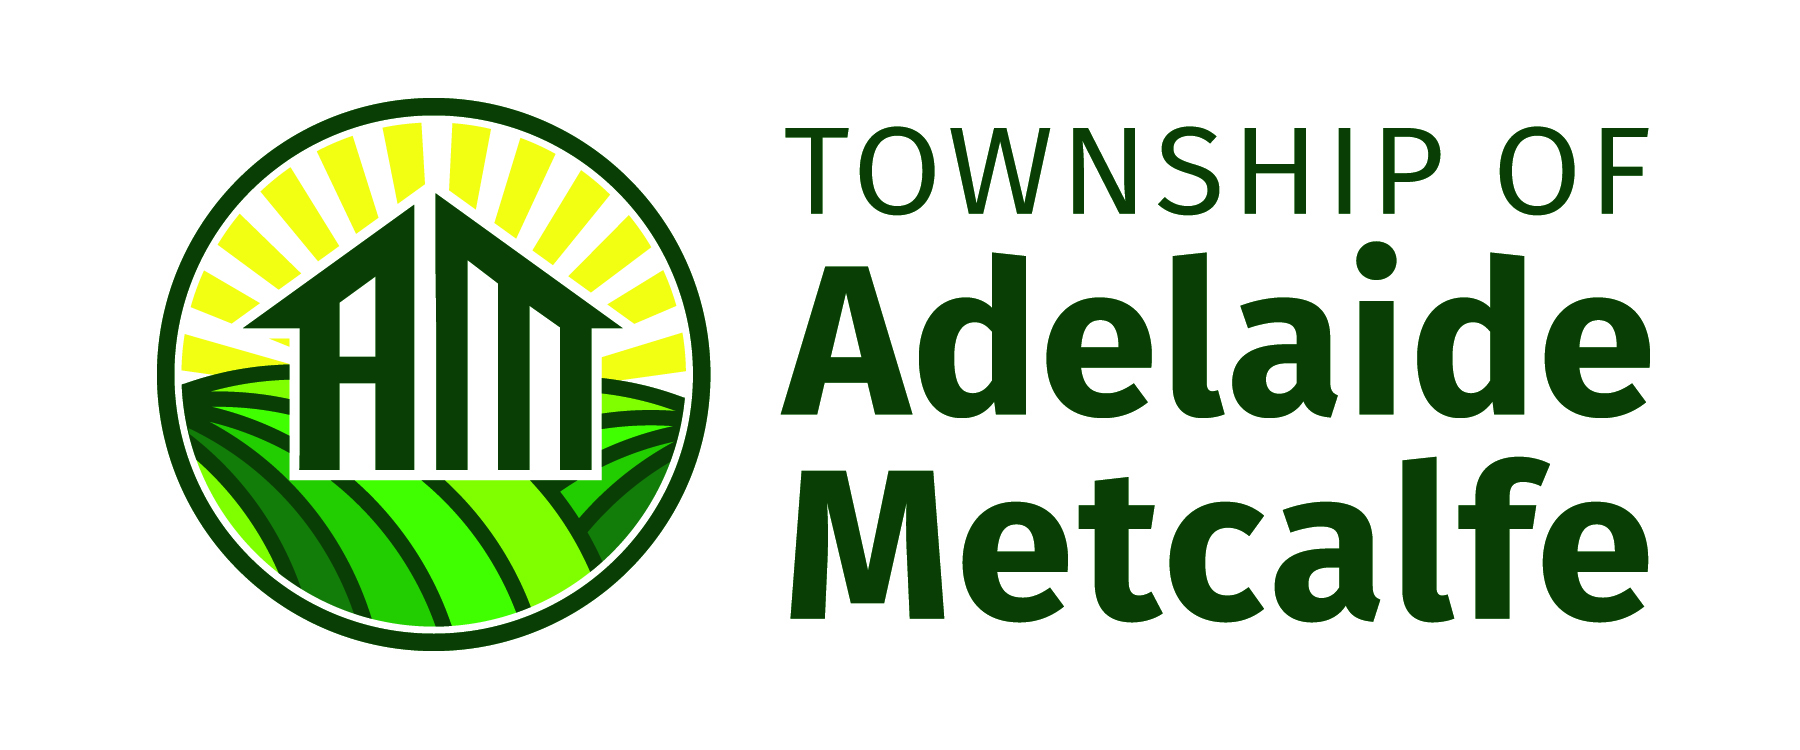 Township of Adelaide Metcalfe